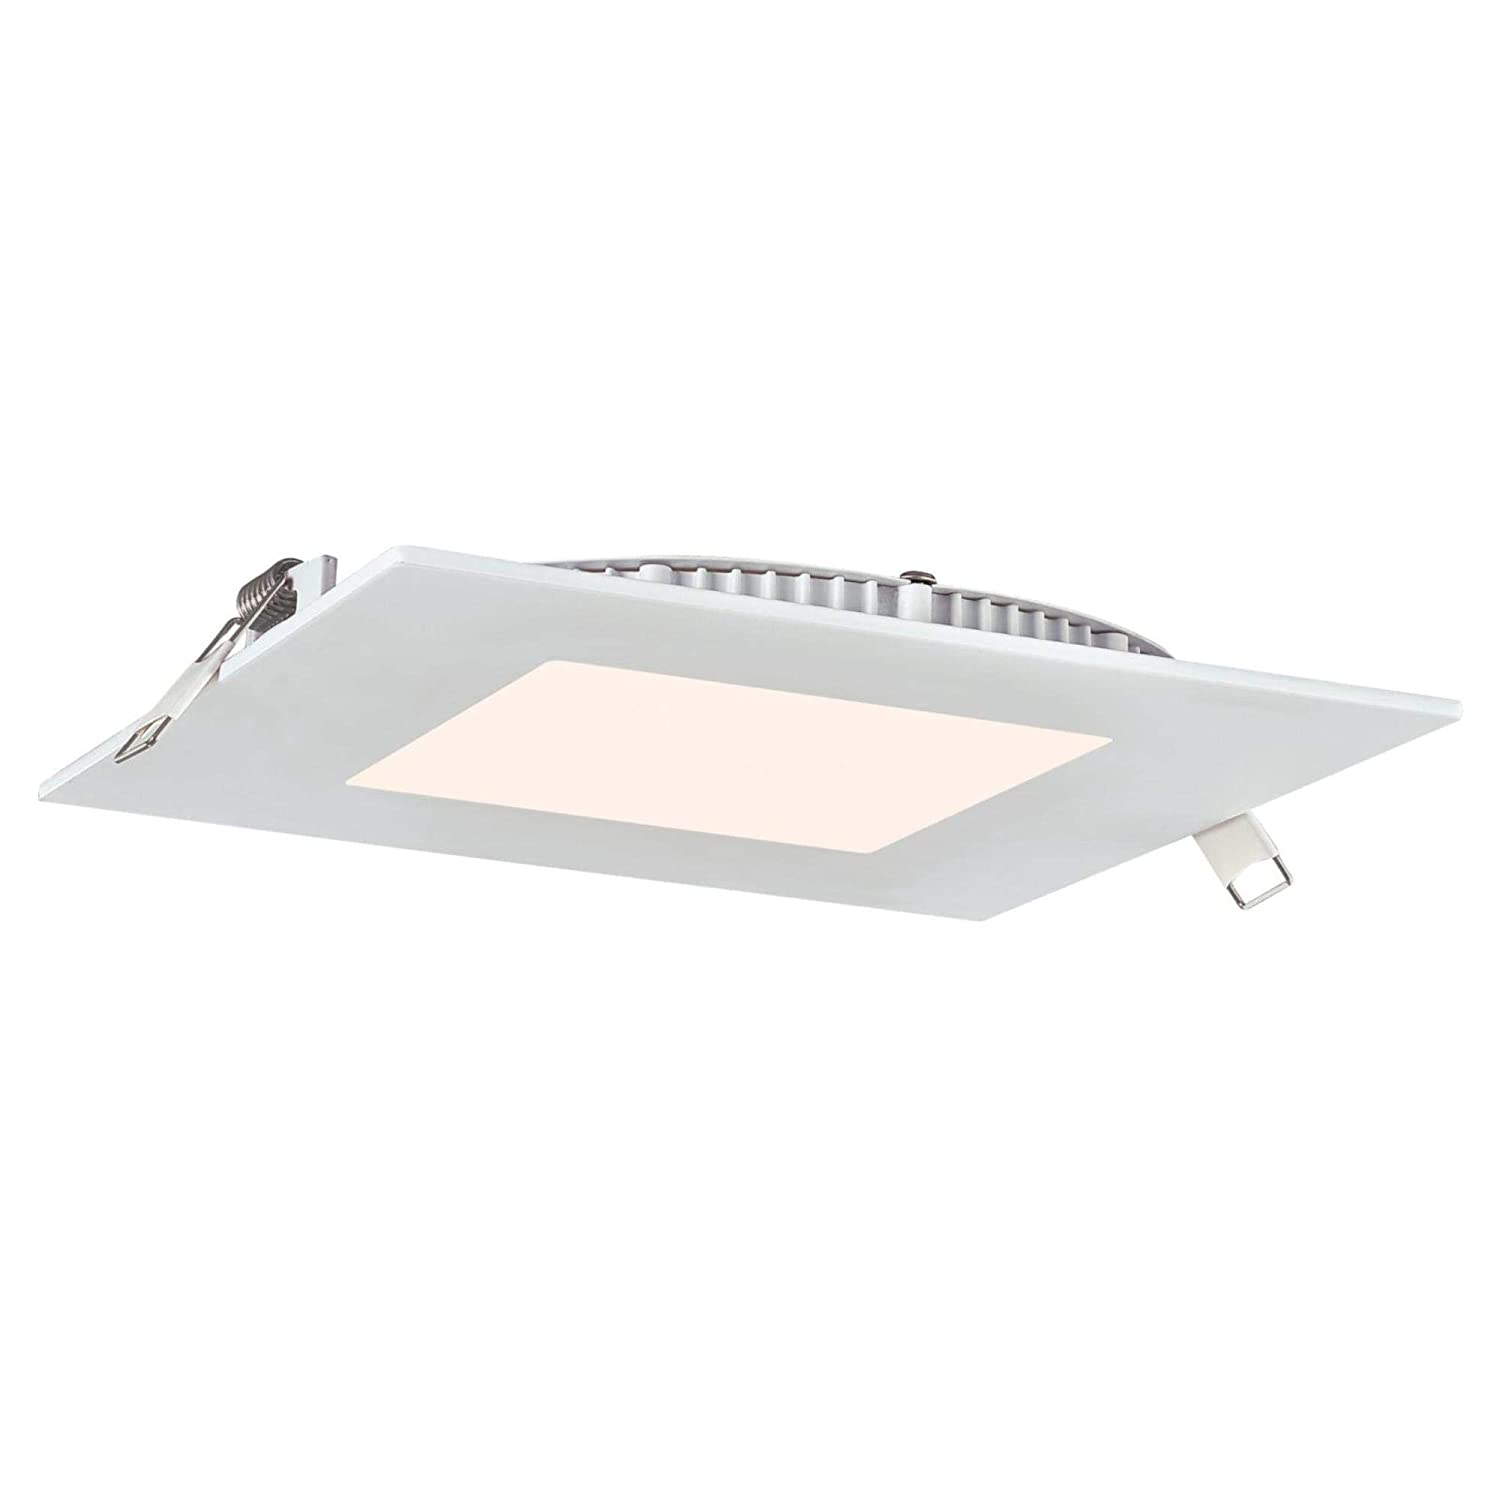 White Trim Slim Recessed Light Kits, Westinghouse Lighting 5192000 12 6-Inch Square LED Downlight Dimmable Cool Energy Star 80-Watt Equivalent